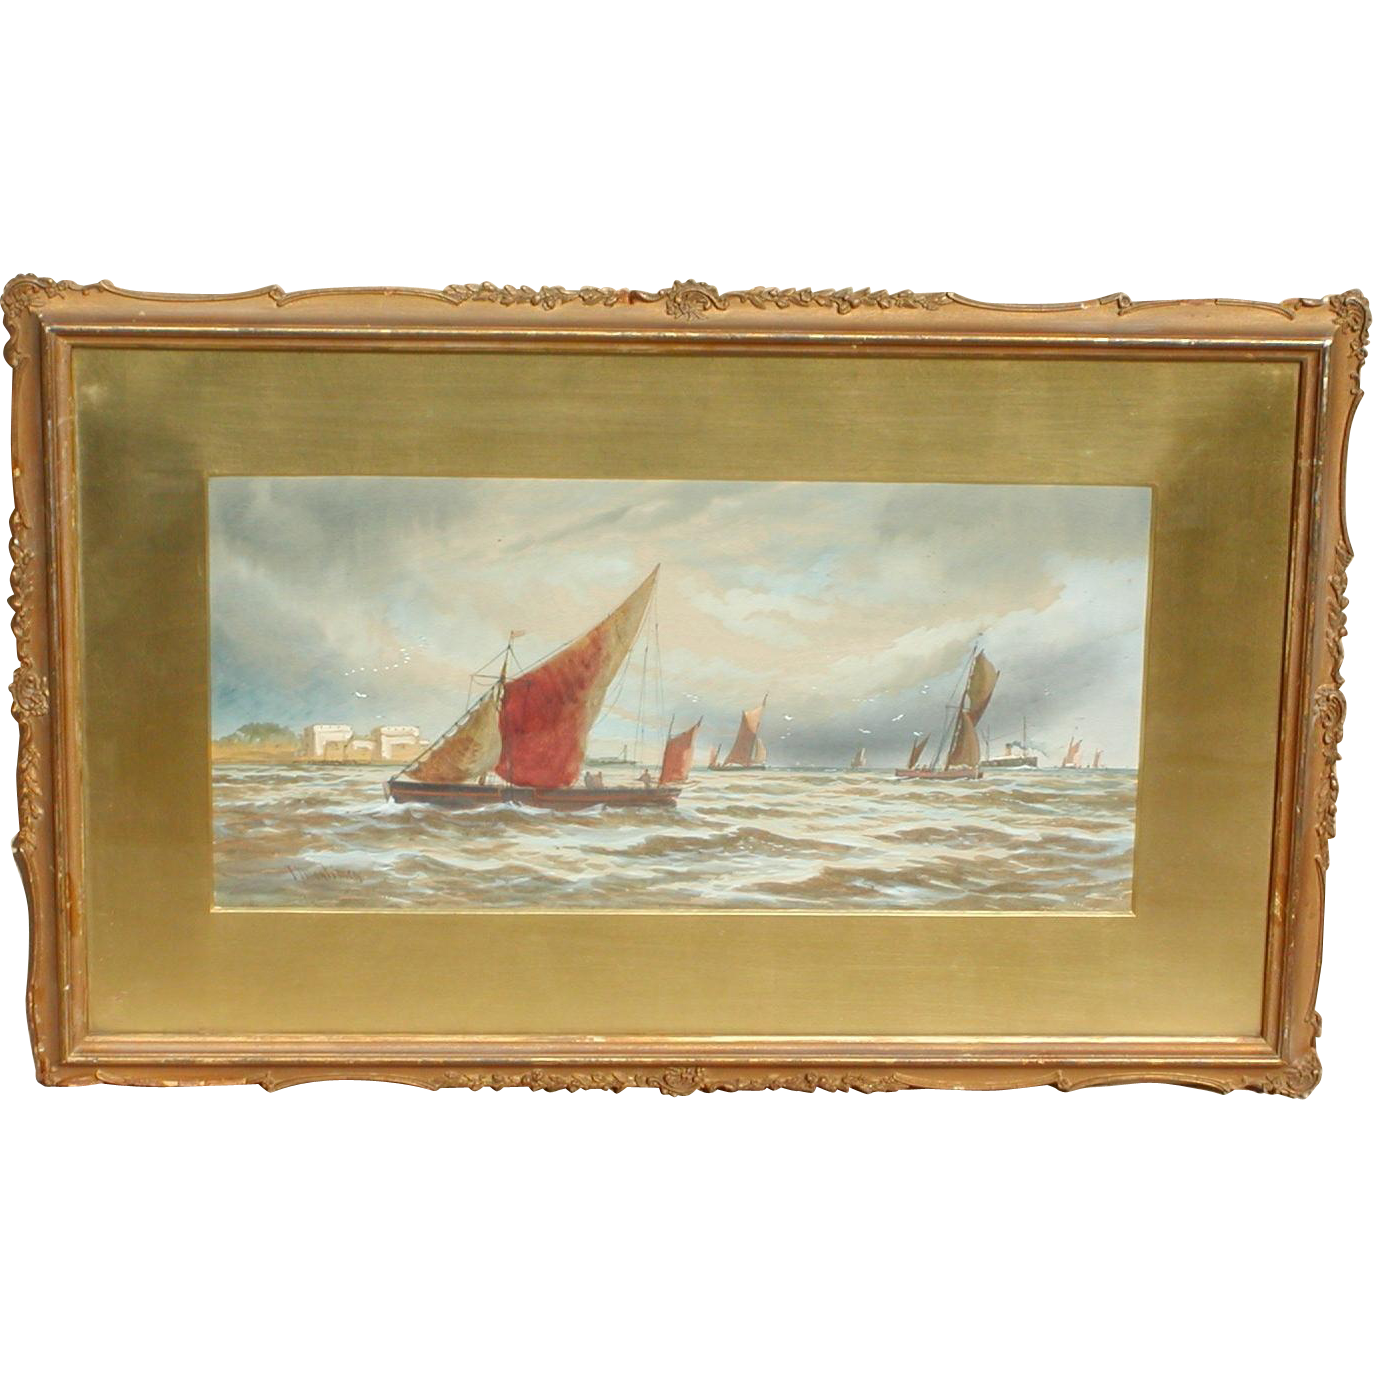 Boats...Painting of boats...Sailing boats...